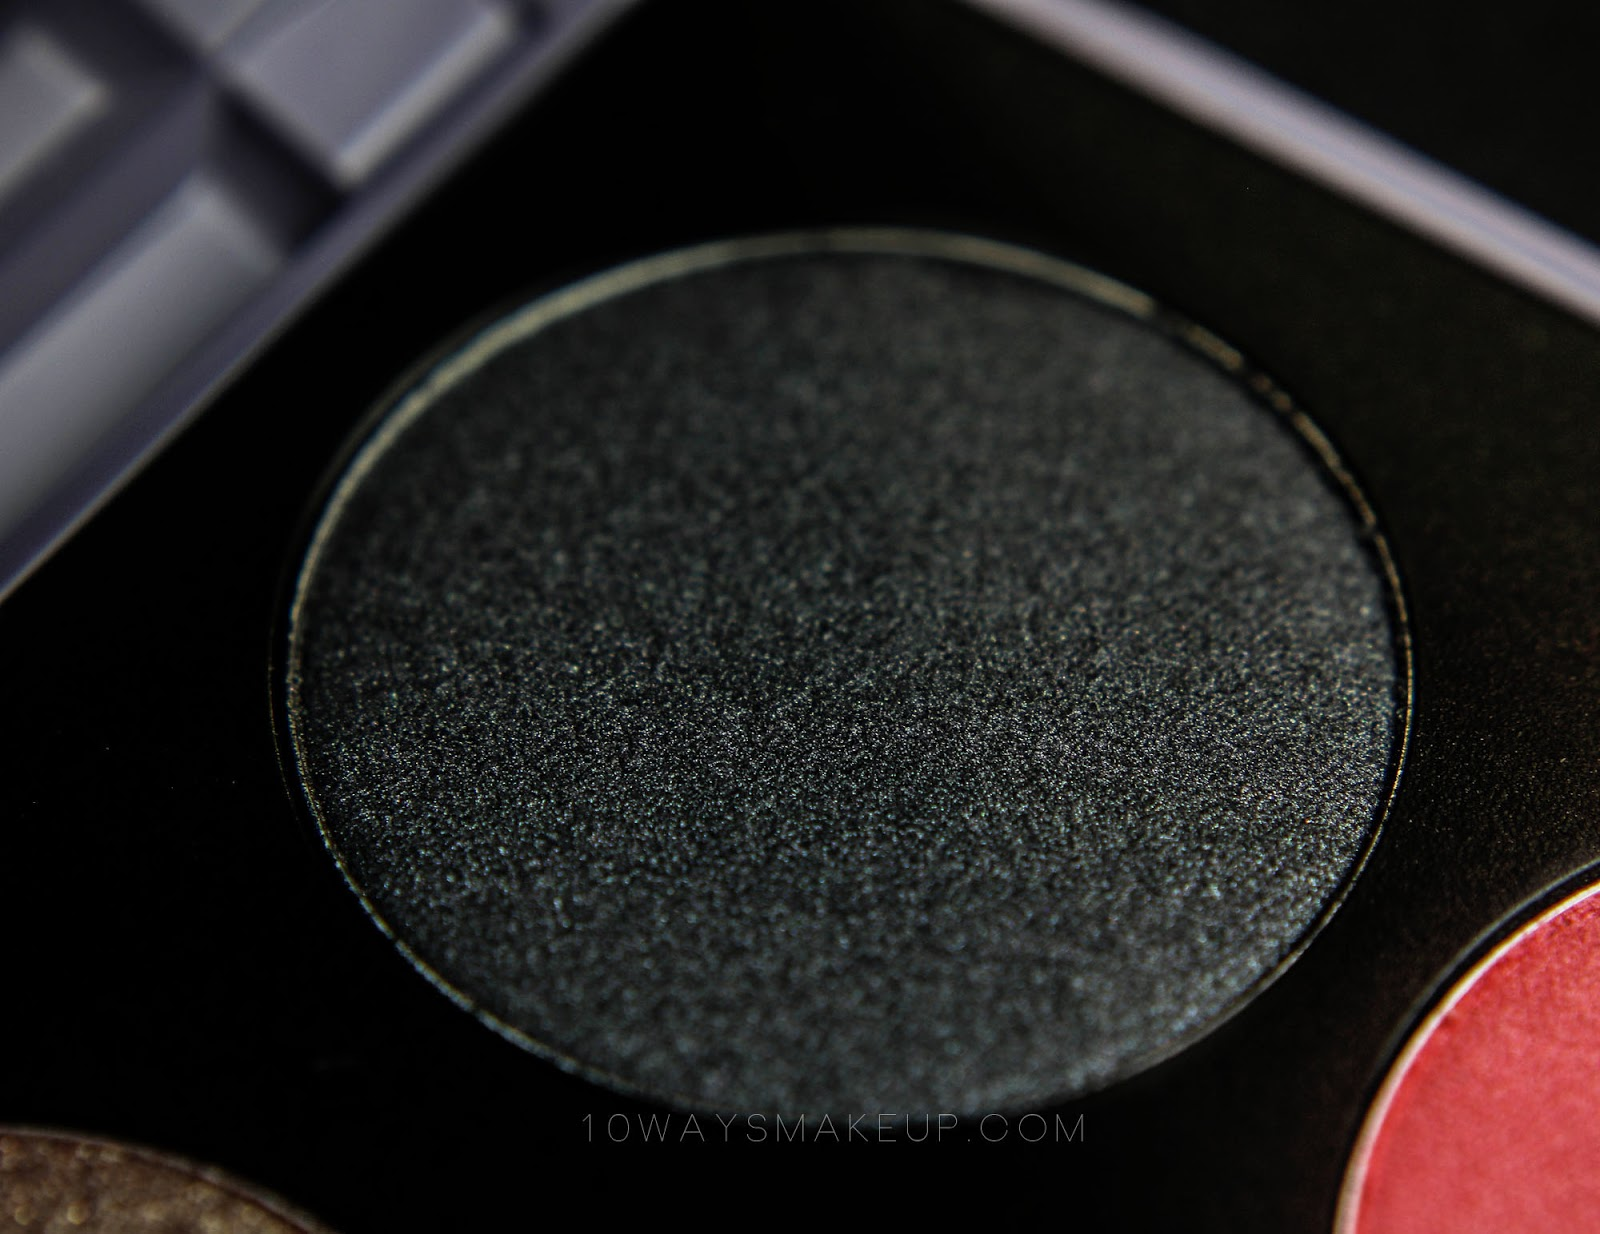 Neve Neogothic Melusine swatch review